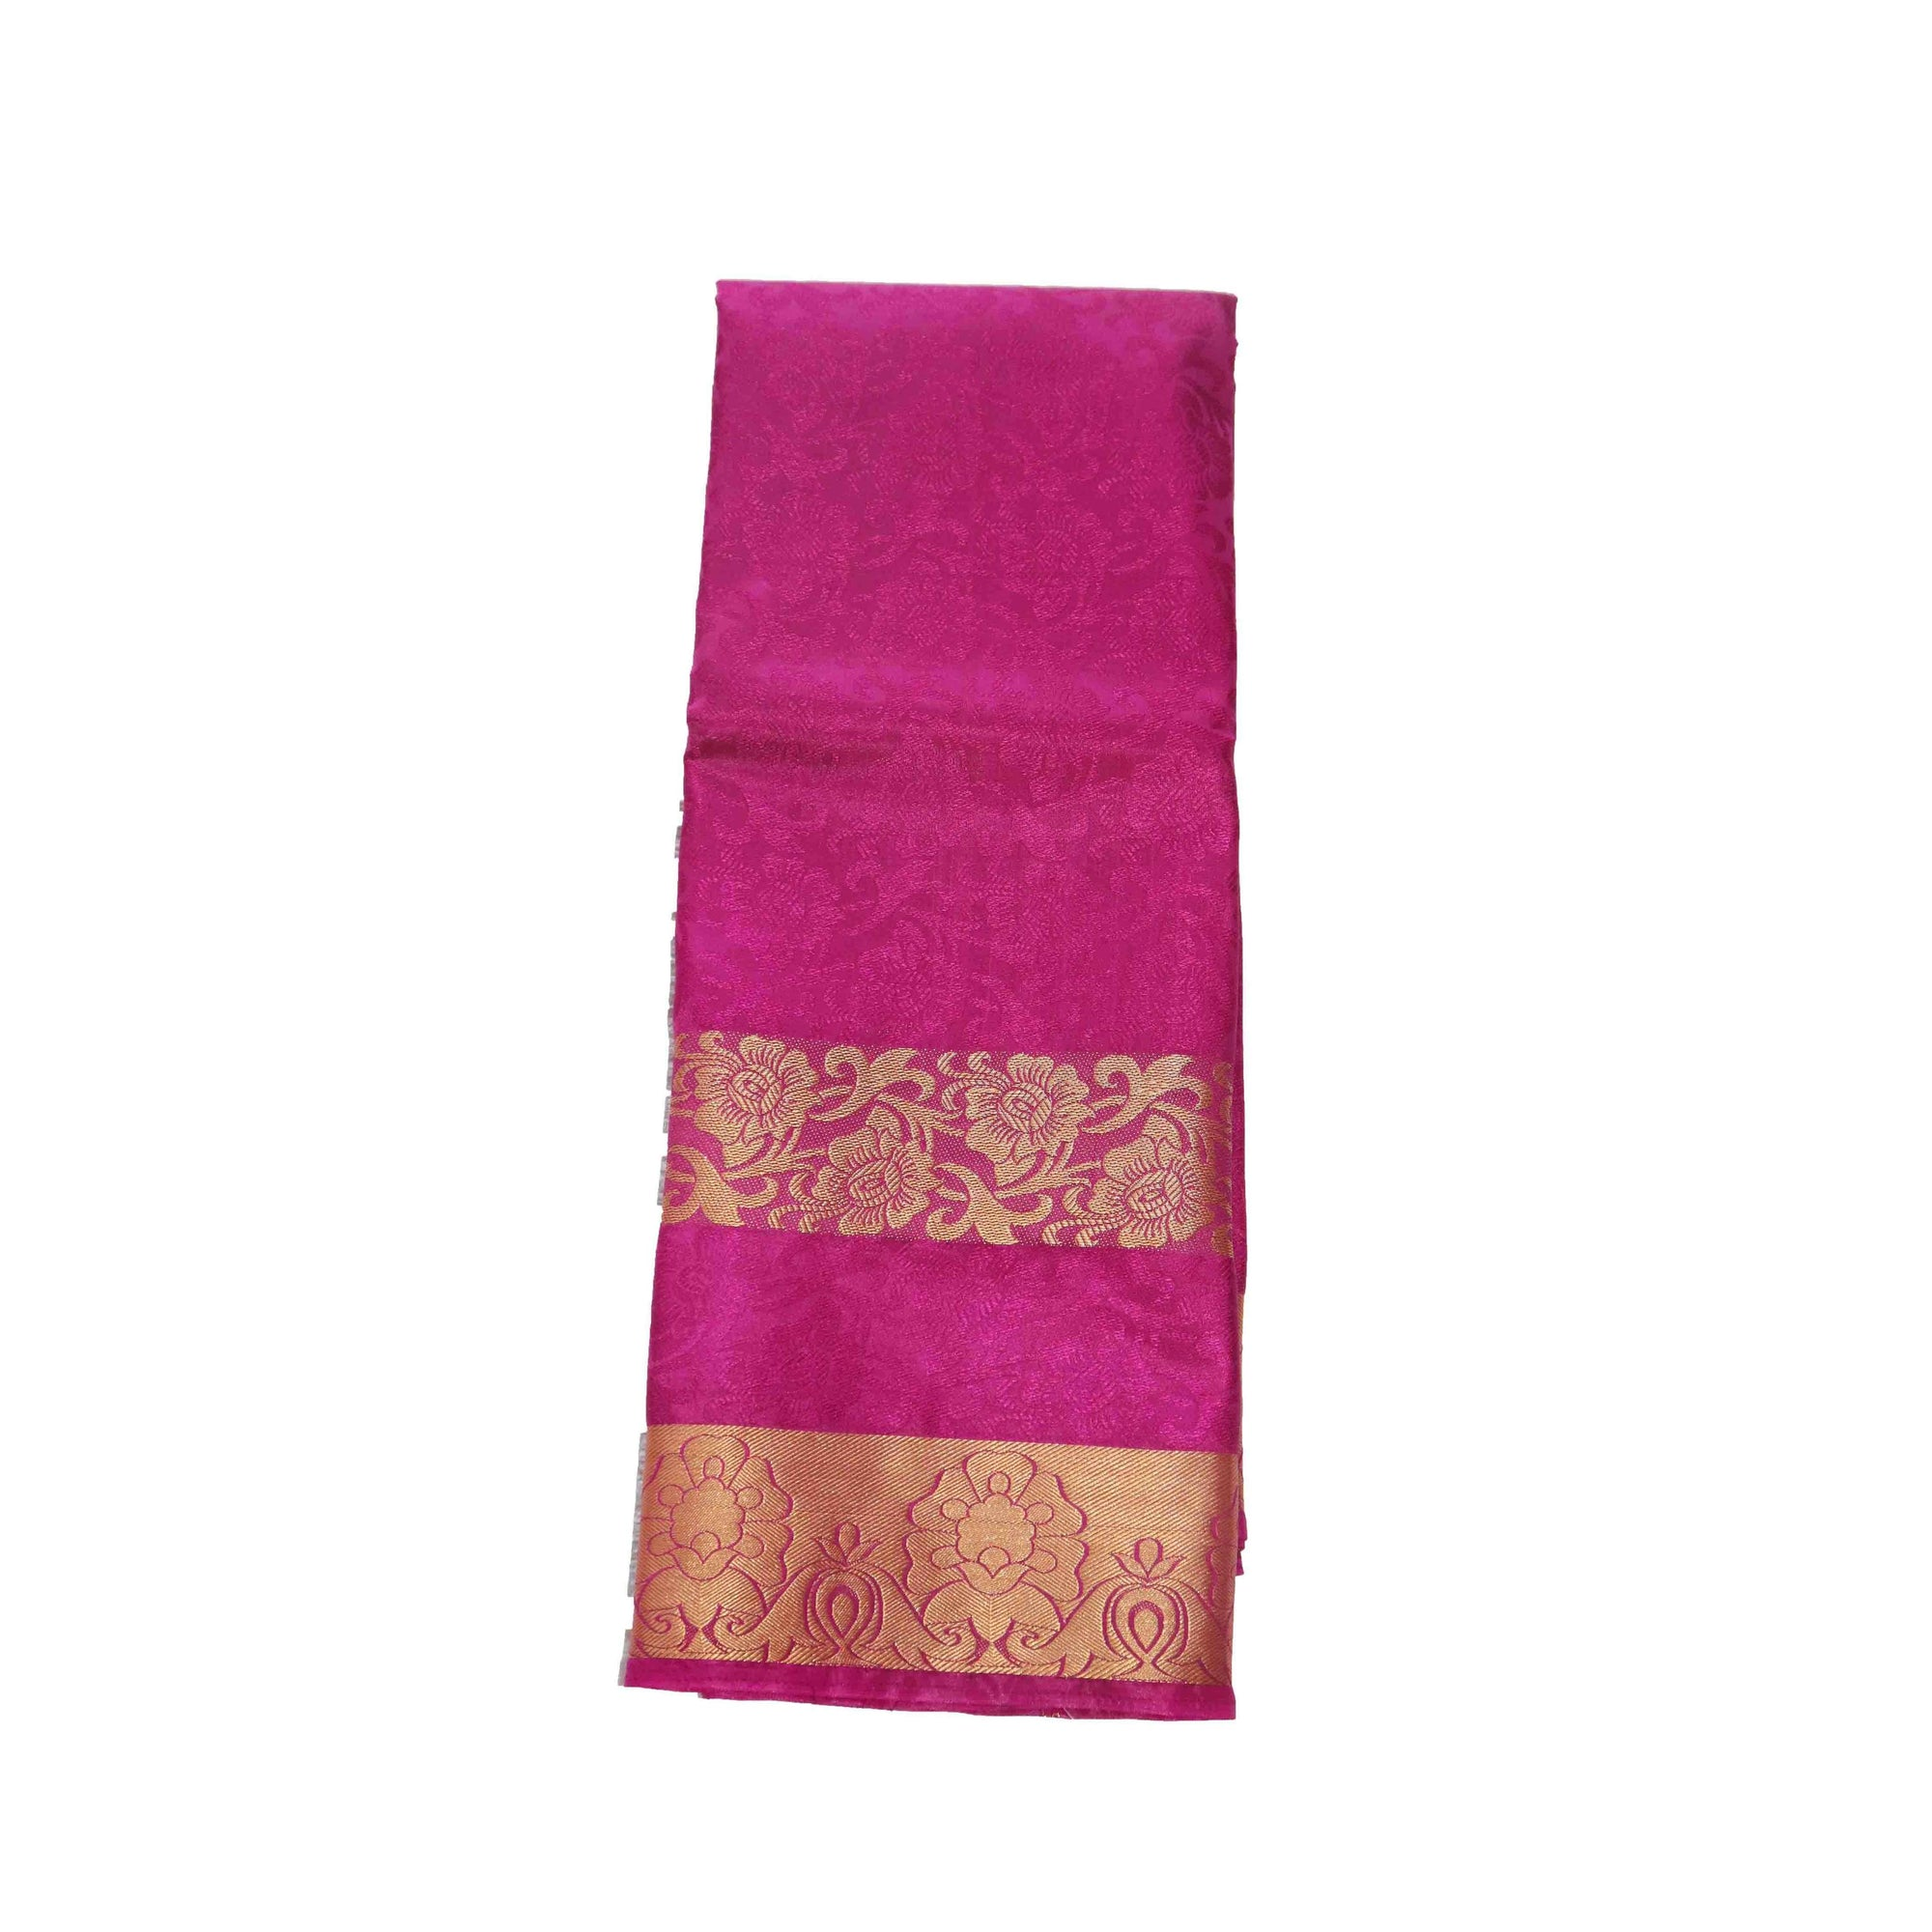 arars Women's kanchipuram kanjivaram pattu kanjivaram embosed plain silk saree with blouse (481, purple)